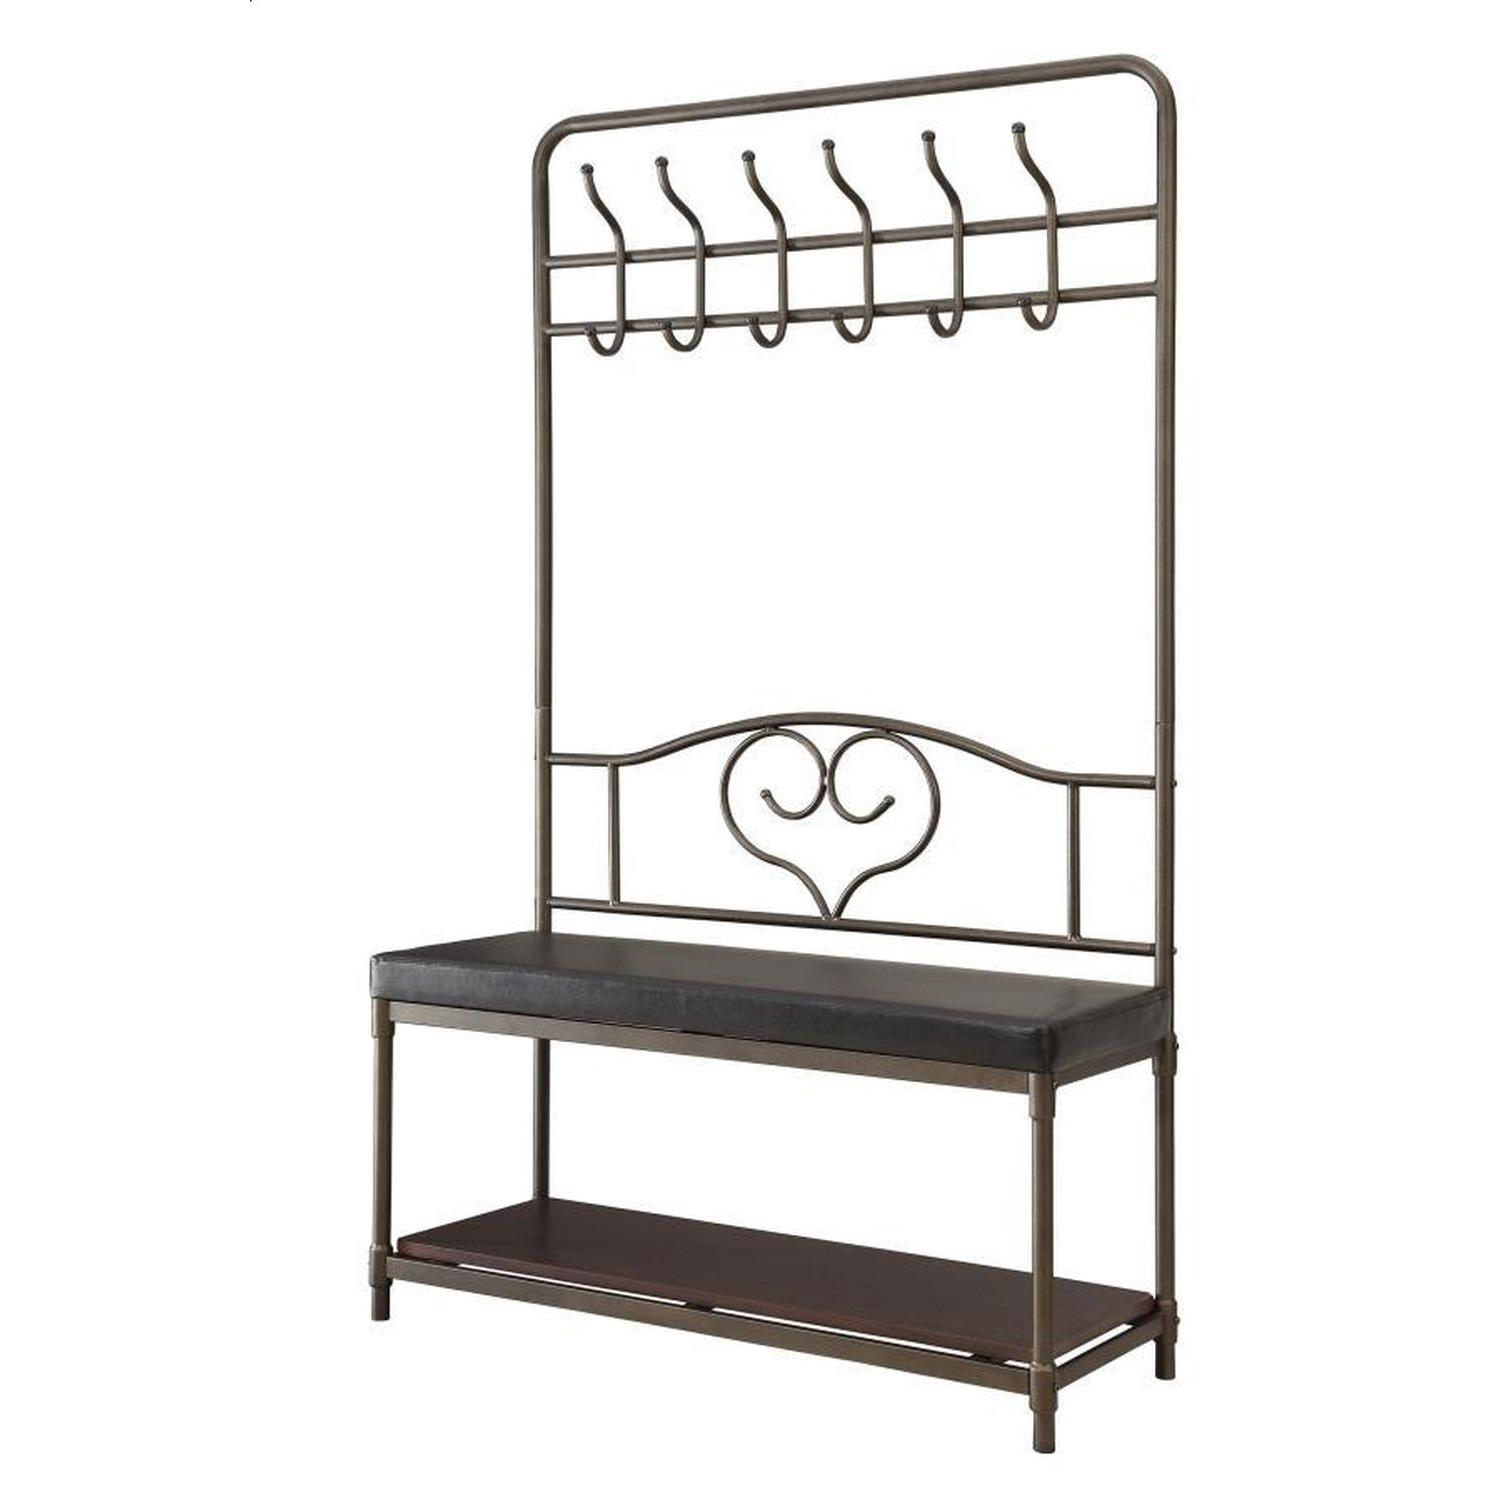 Hall Tree w/ Garment Racks, Storage Shelf & Cushioned Seat - image-1